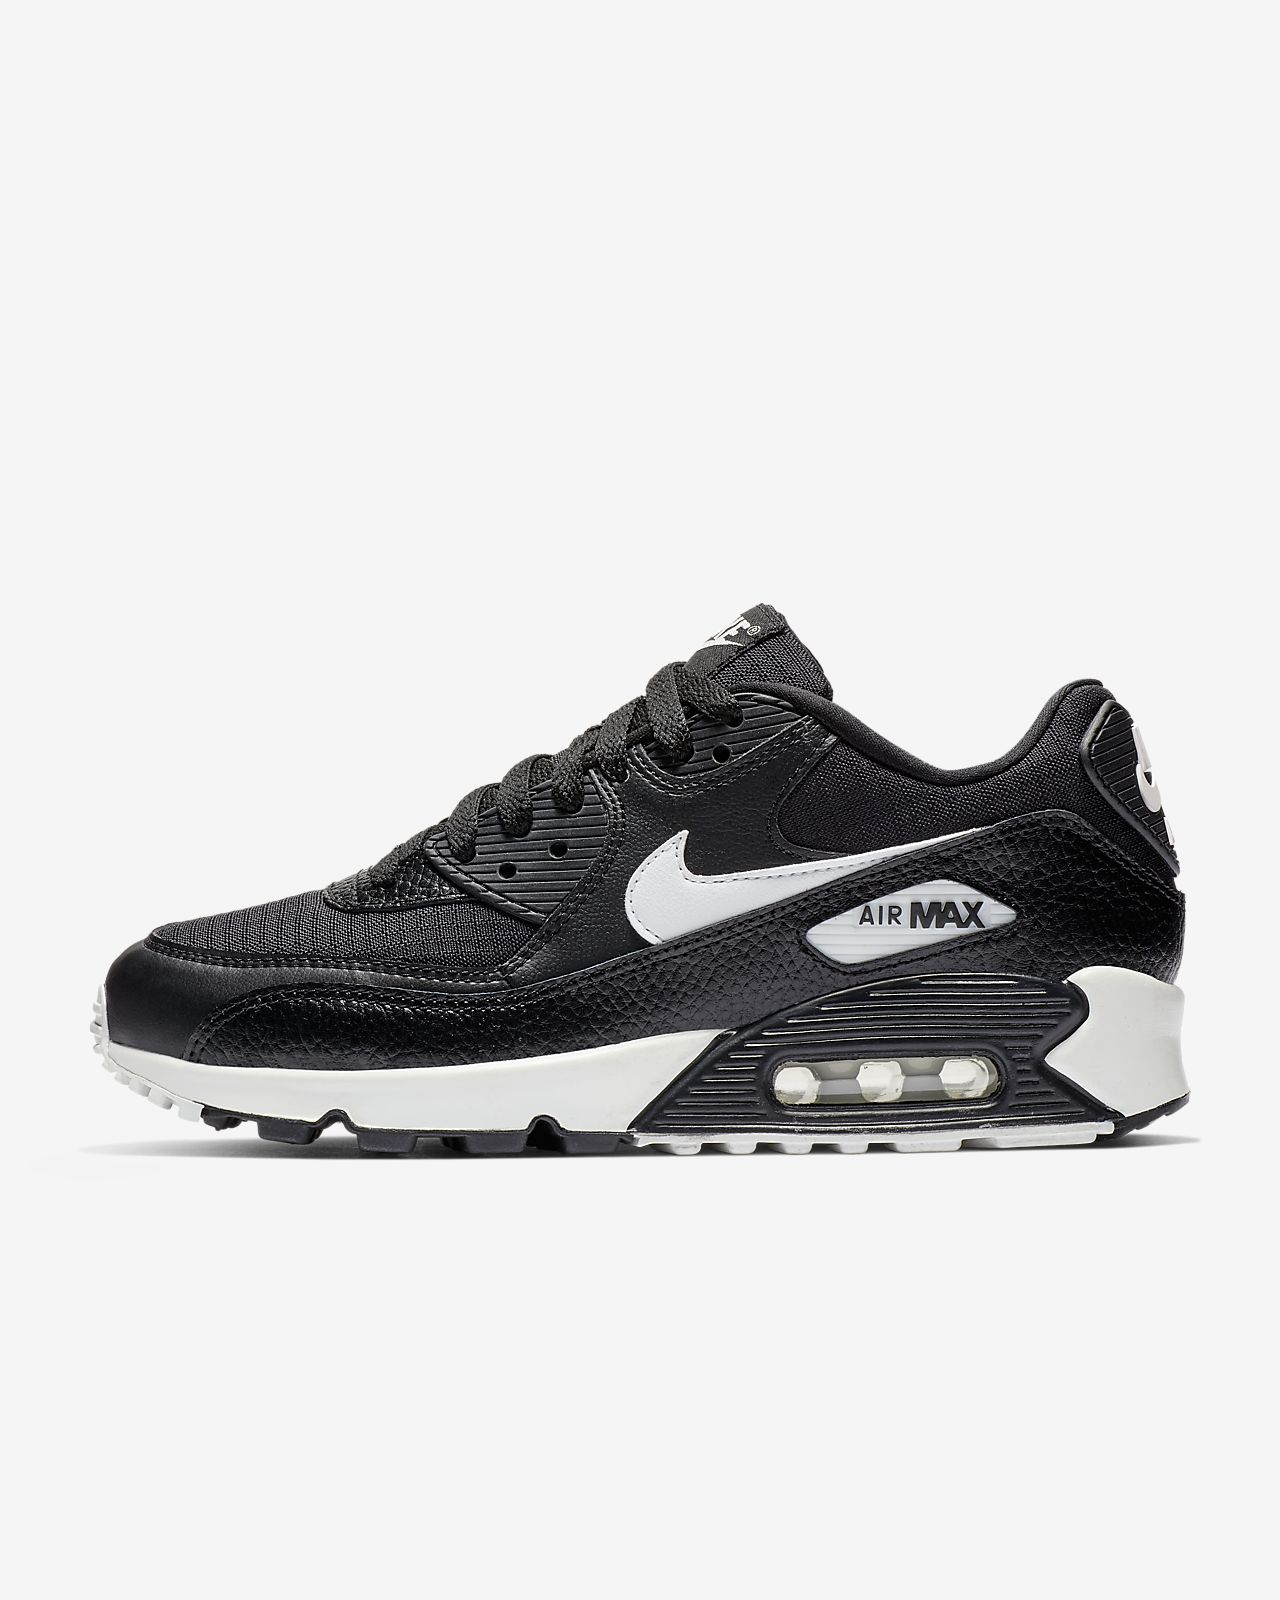 super popular 2e08e 8495b Women s Shoe. Nike Air Max 90